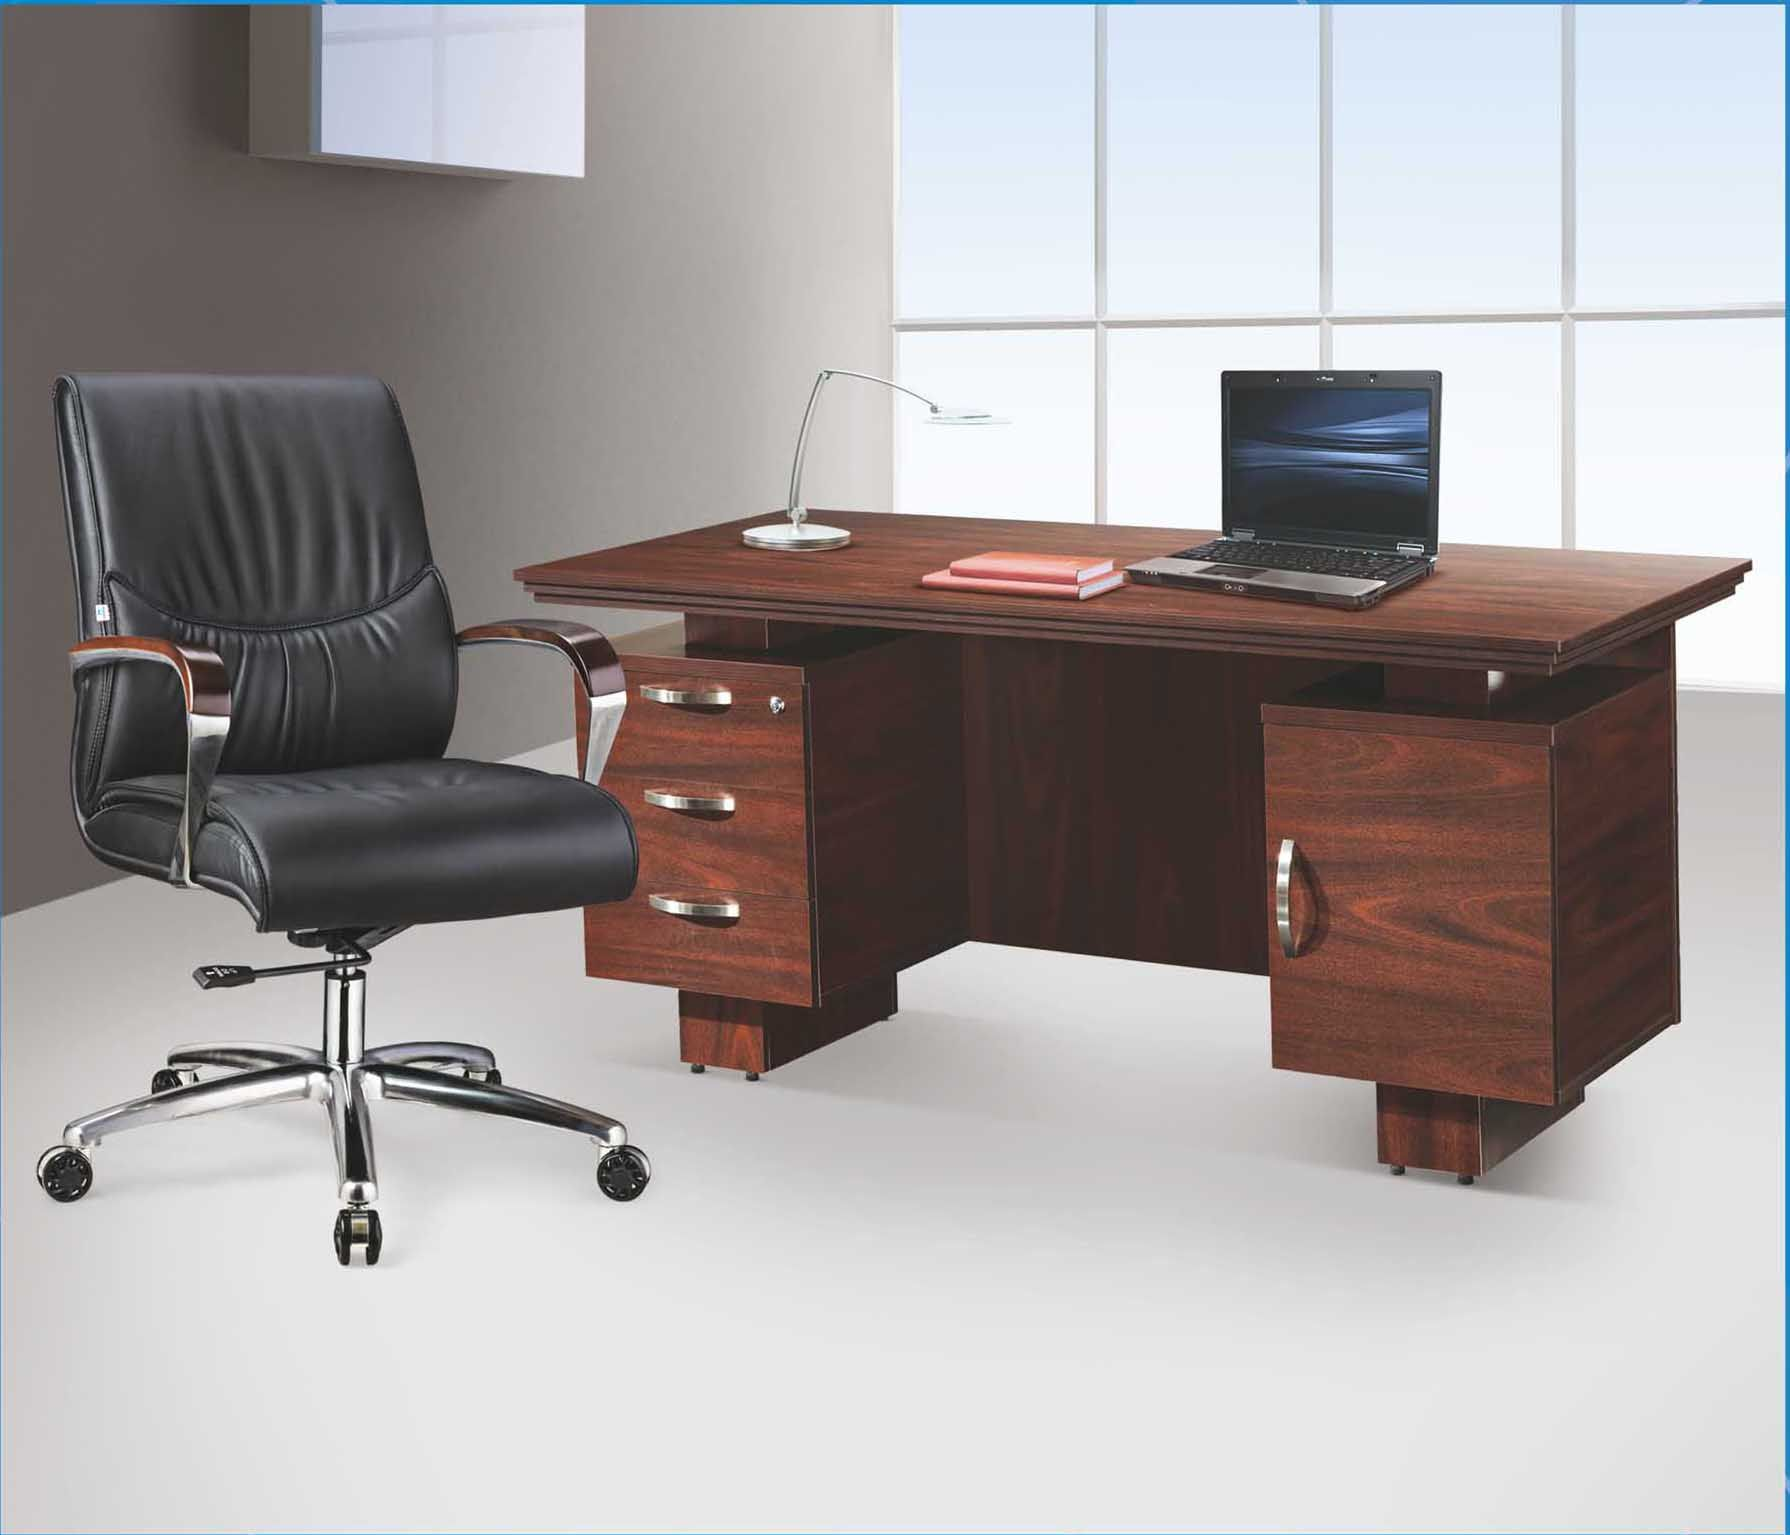 Merveilleux Buy Modular Office Furniture Online